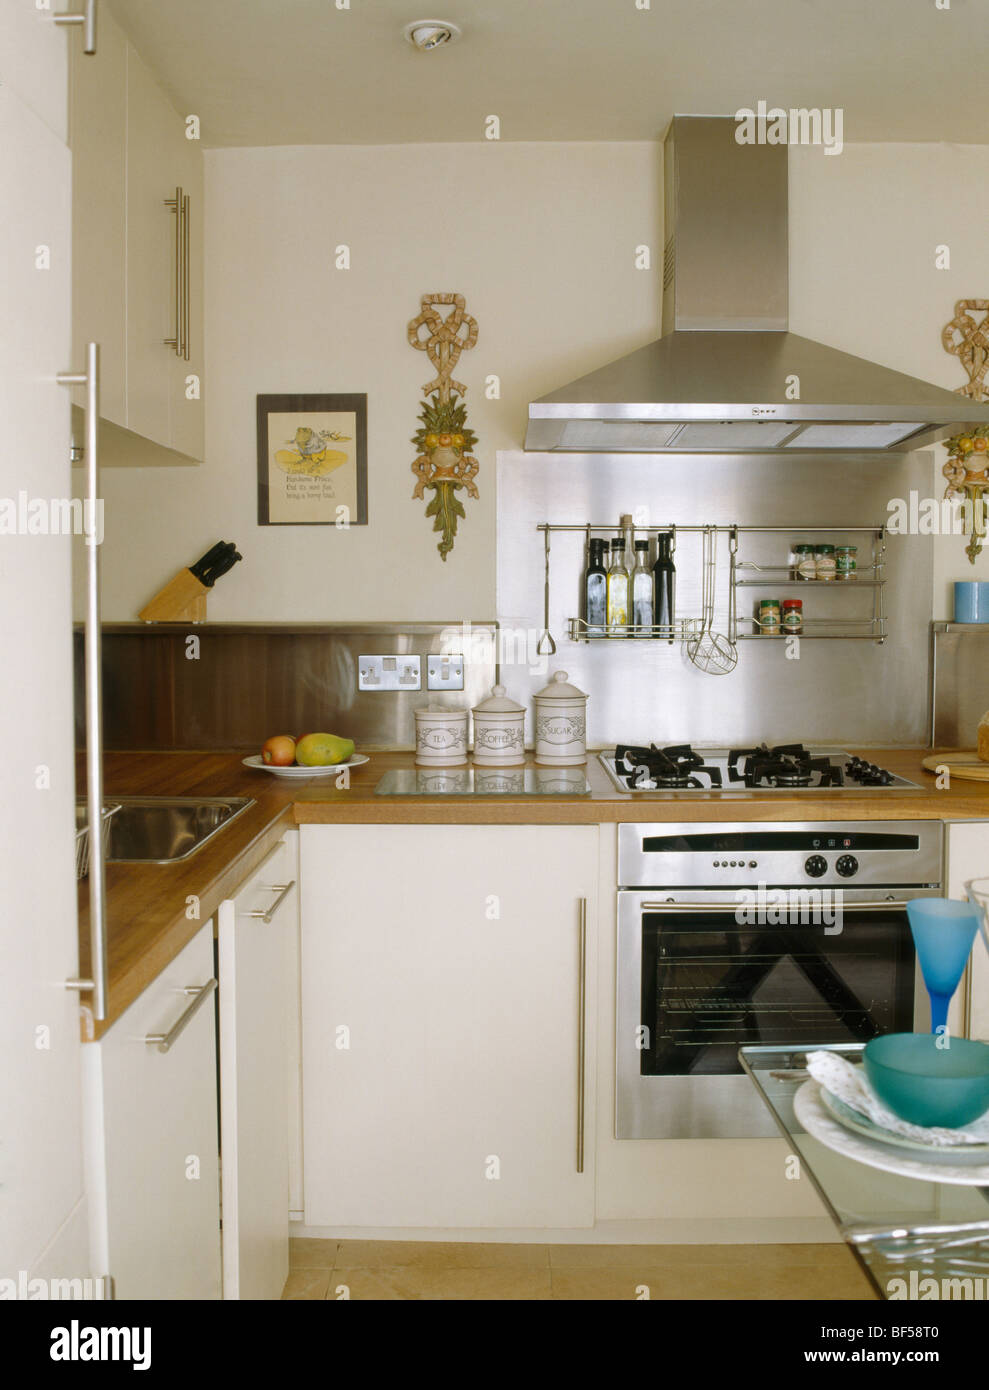 Small Modern Cream Kitchen With Stainless Steel Extractor